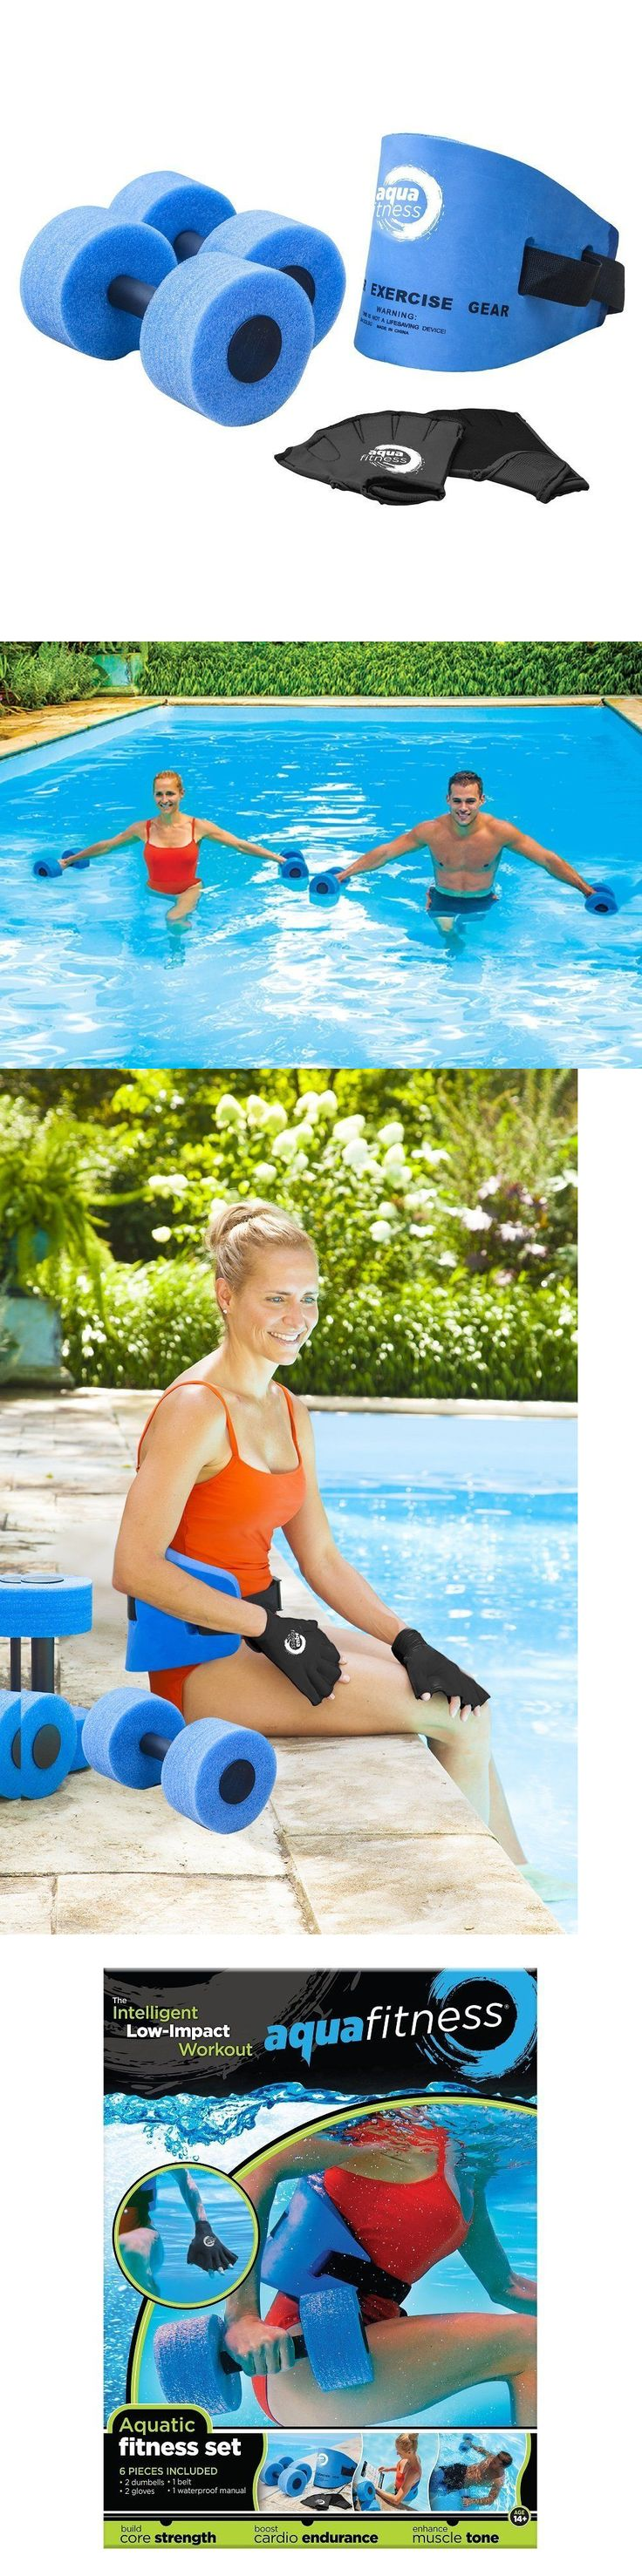 25 best ideas about swimming pool exercises on pinterest pool exercises water aerobics for Swimming pool water loss calculator